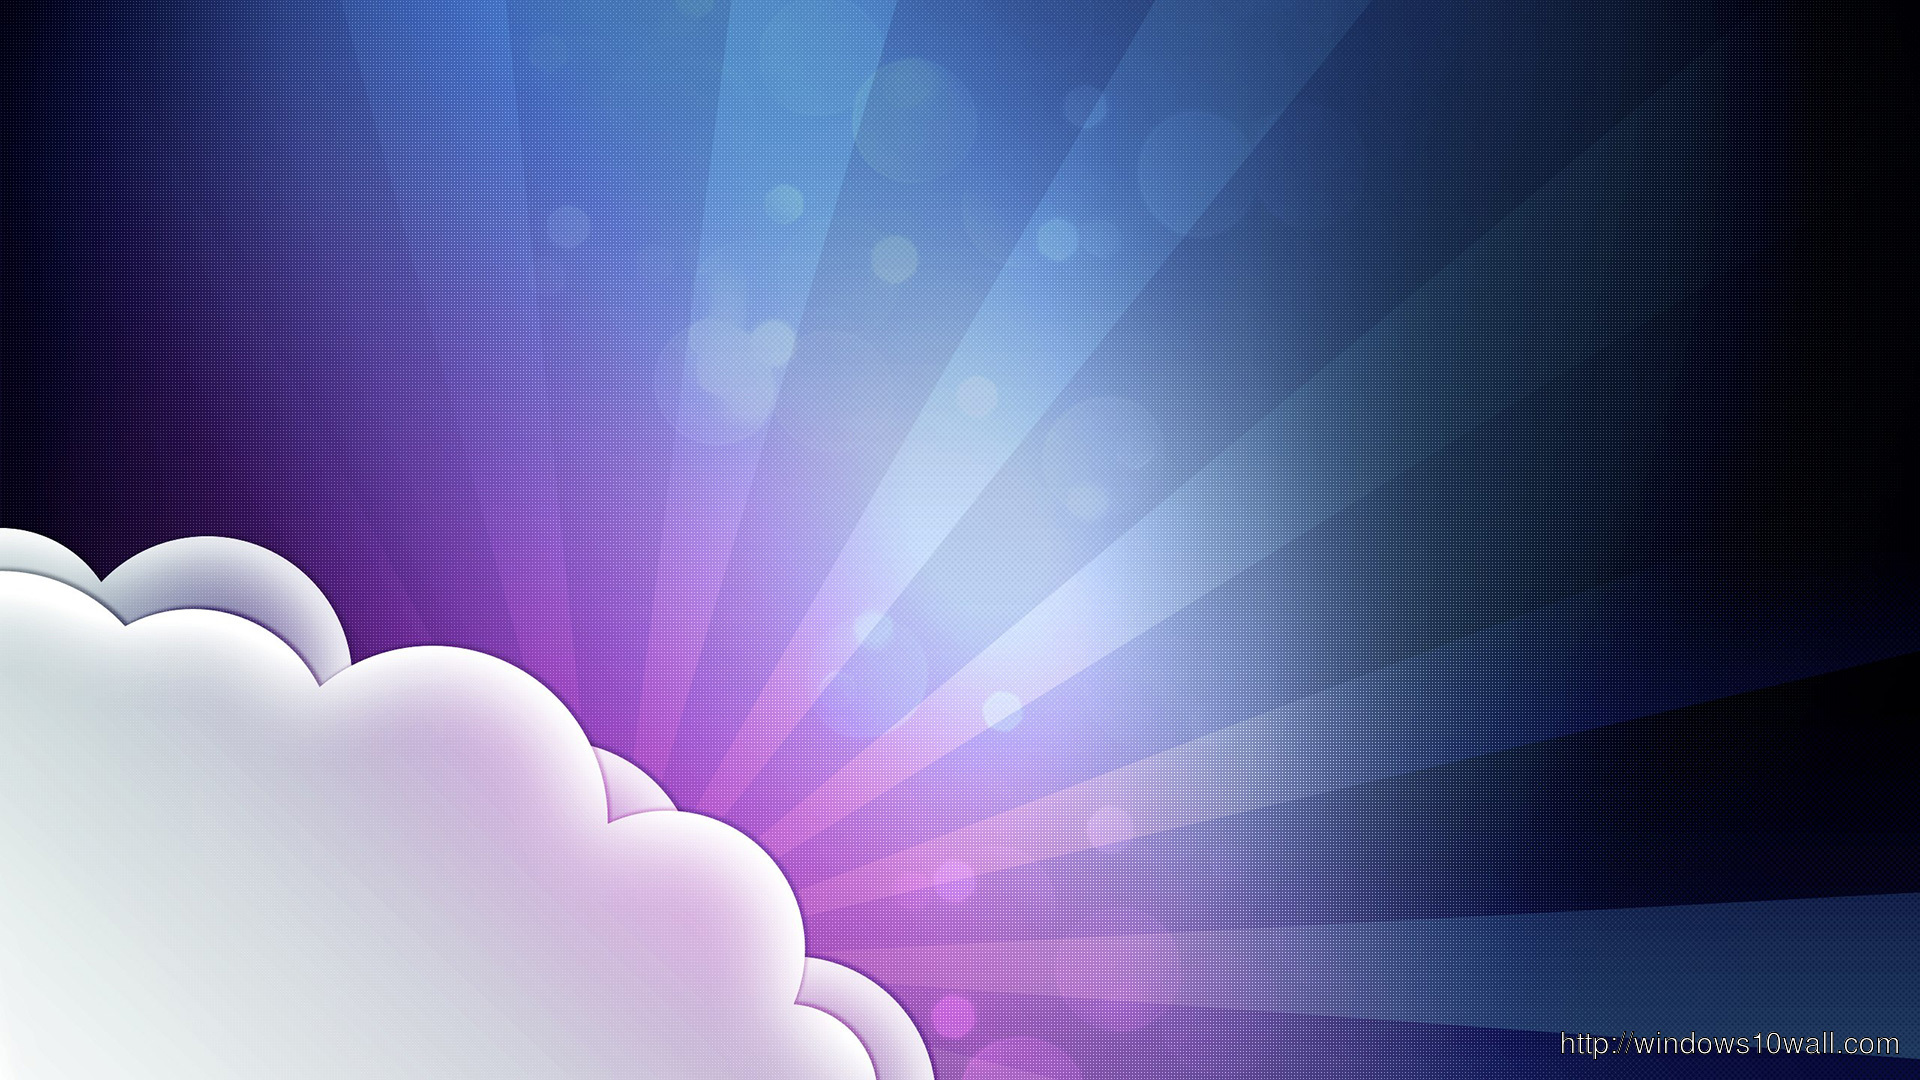 Cloudy Twitter Background Image